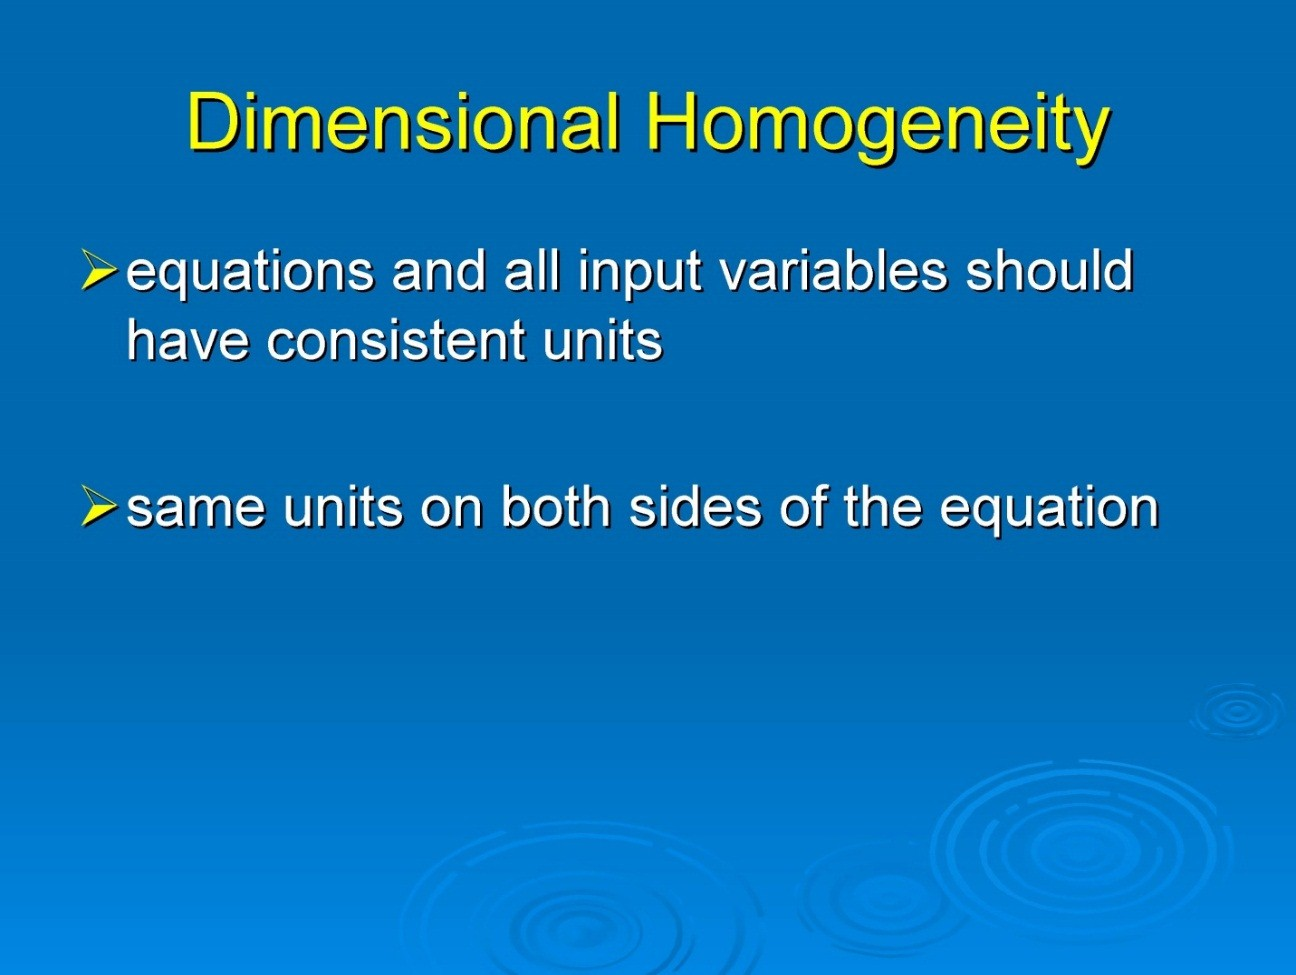 Concepts of Principle of Homogeneity